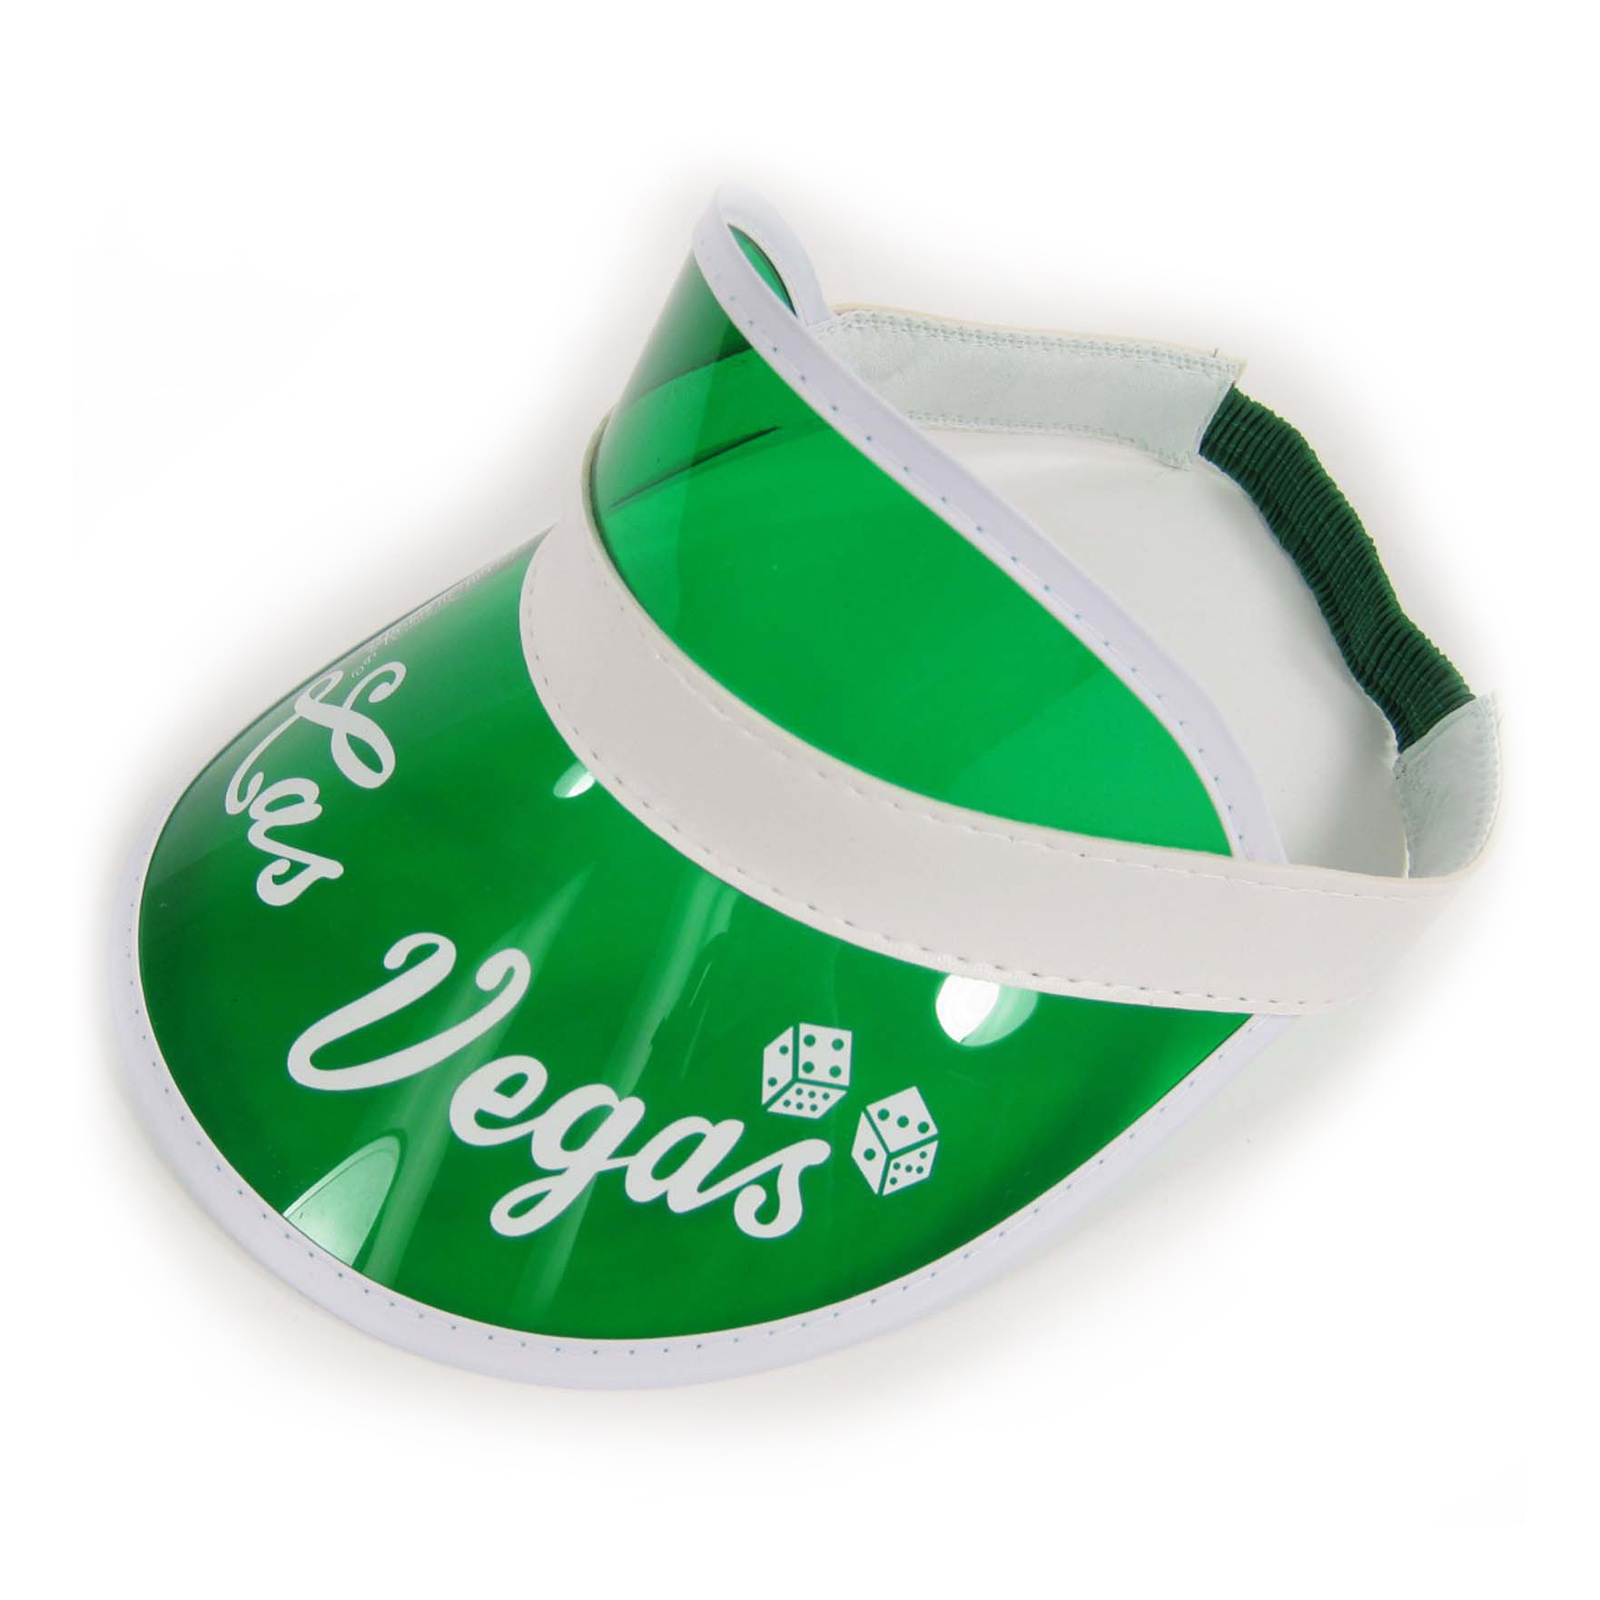 Poker-Dealer-BANKER-Clerk-Visor-Hat-Las-Vegas-Texas-Hold-em-Green